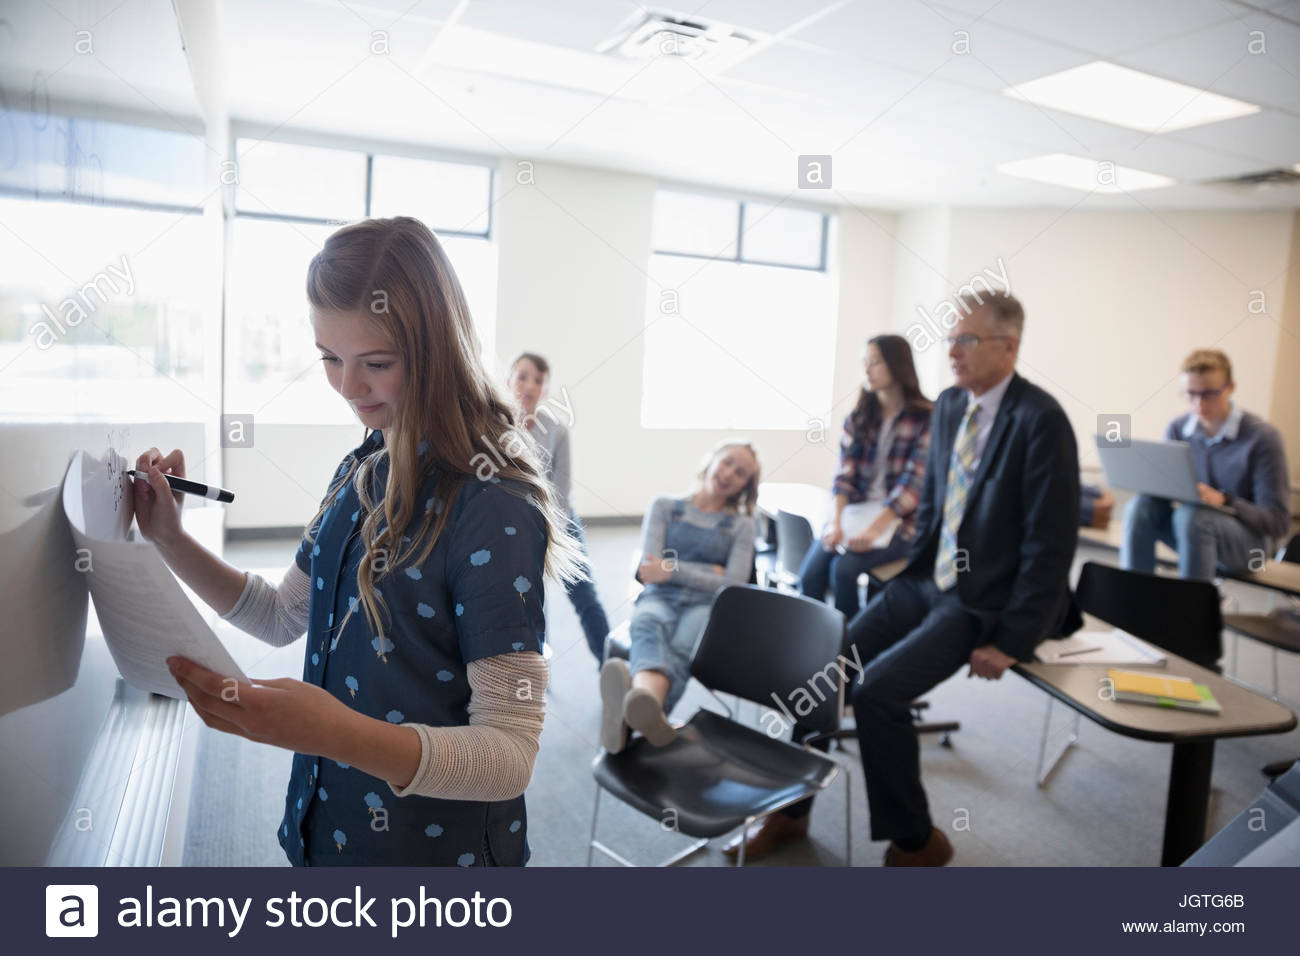 Girl middle school student writing at whiteboard in classroom - Stock Image